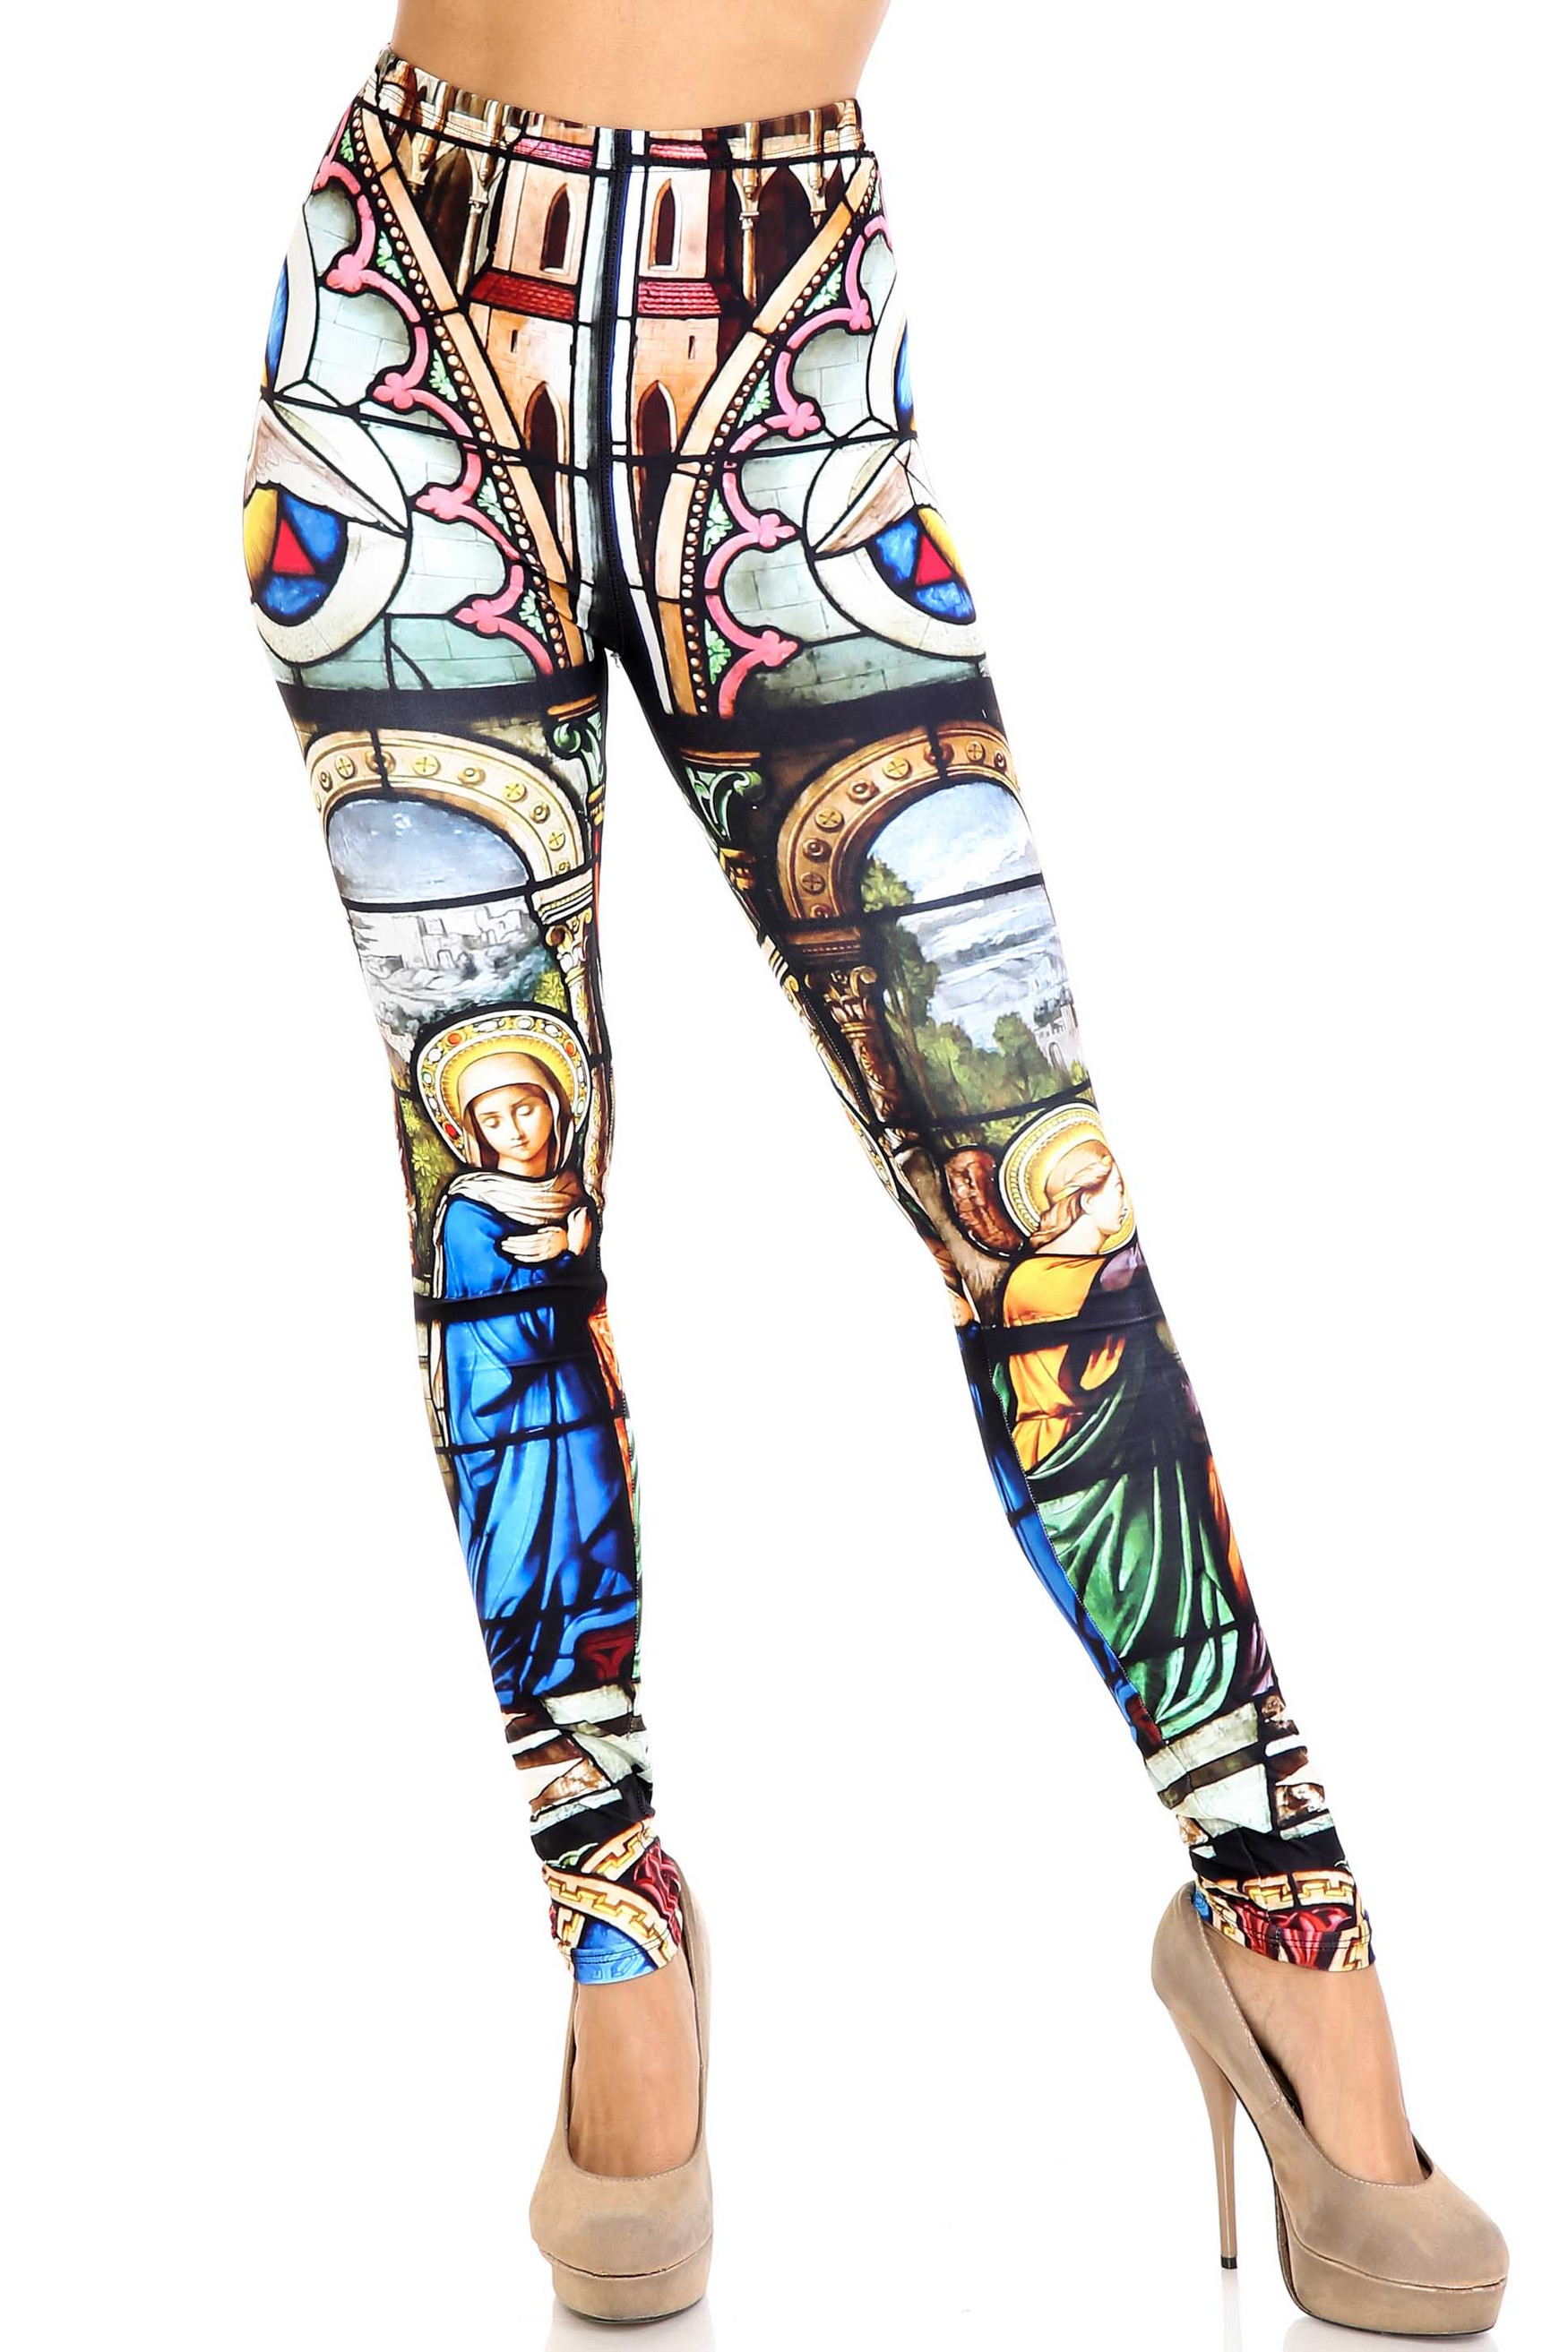 Creamy Soft Stained Glass Cathedral Plus Size Leggings - USA Fashion™